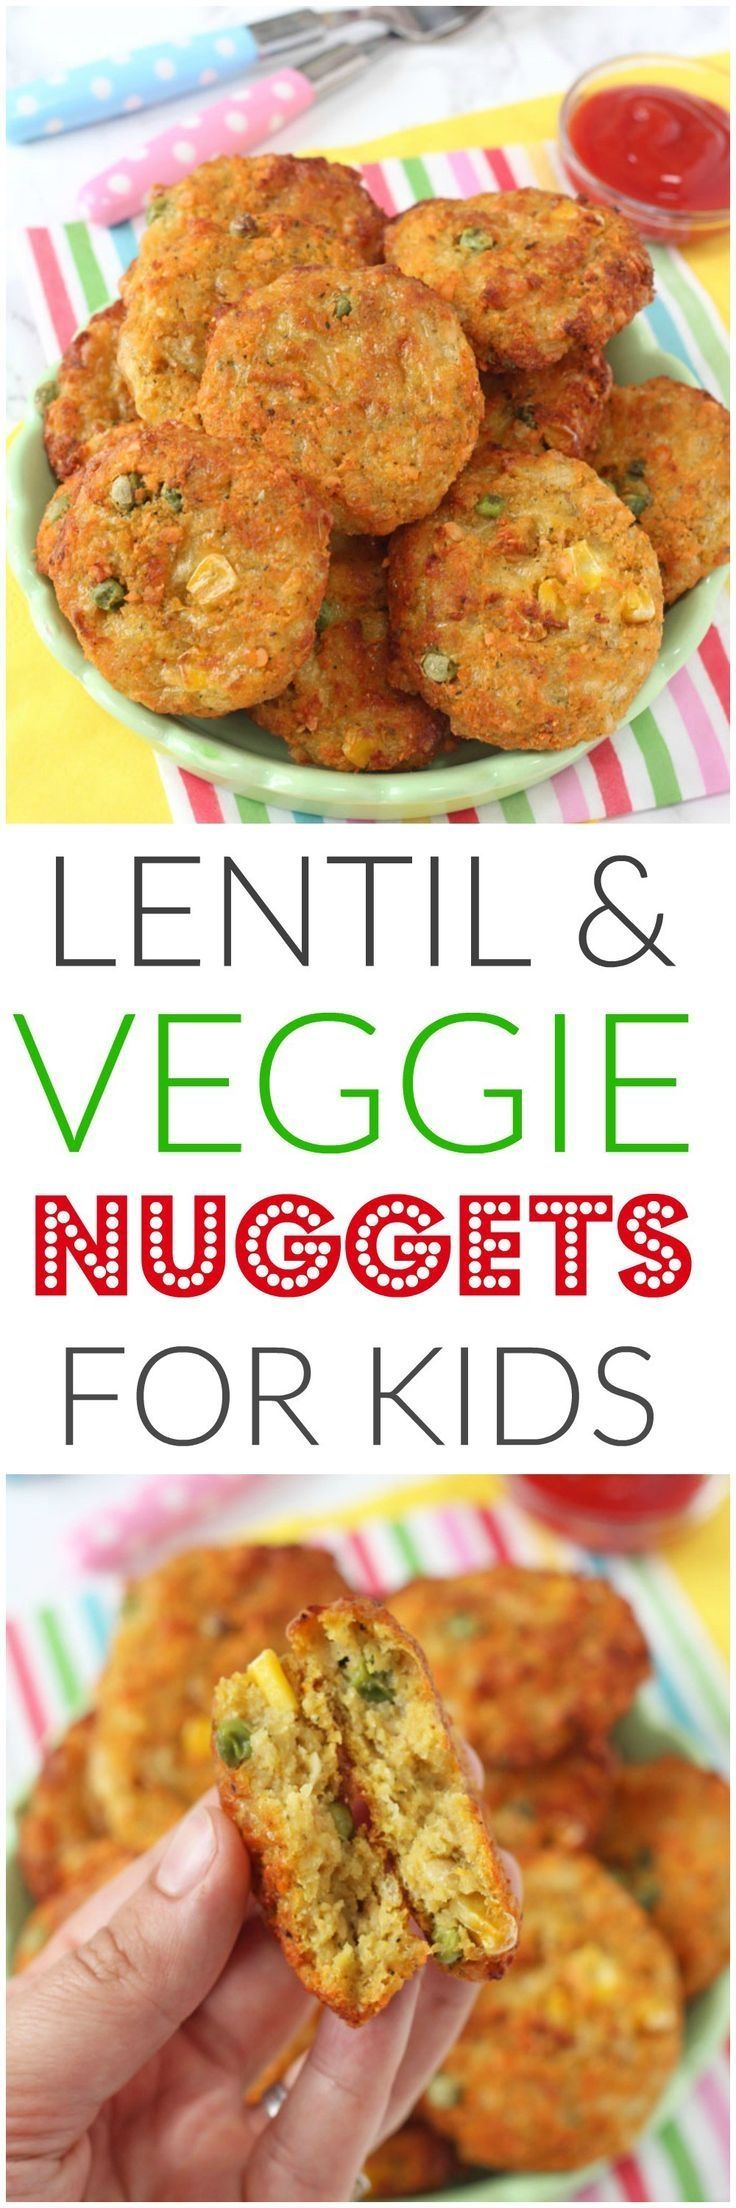 Delicious veggie nuggets packed with lentils. These make brilliant finger foods for kids, toddlers and weaning babies too. Super healthy and so easy to make! #weightlosssmoothiesrecipes